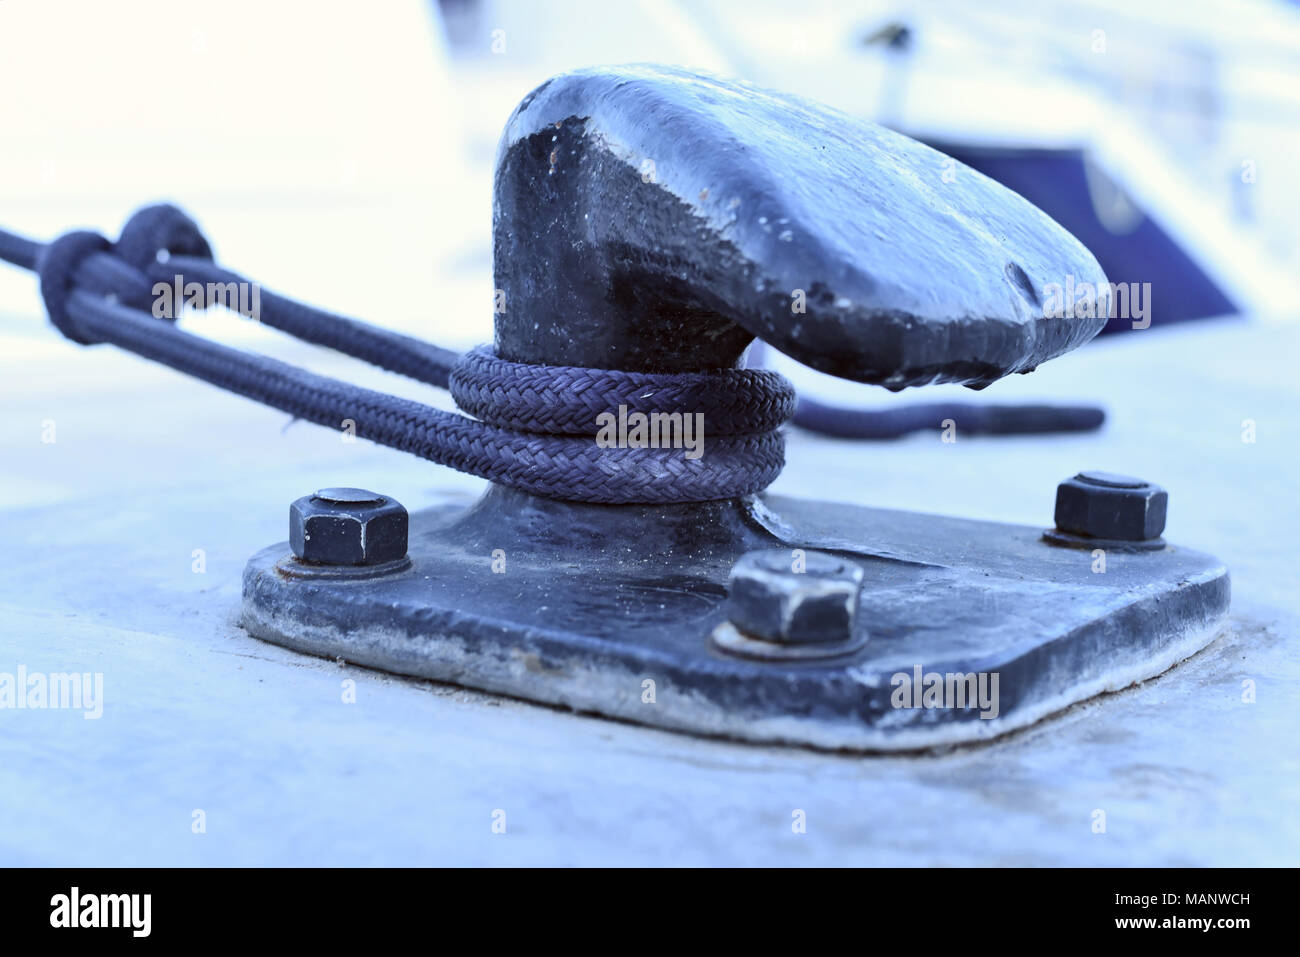 Harbor scene with focus on a rope or anchored boat on a pier. Detail shot. - Stock Image